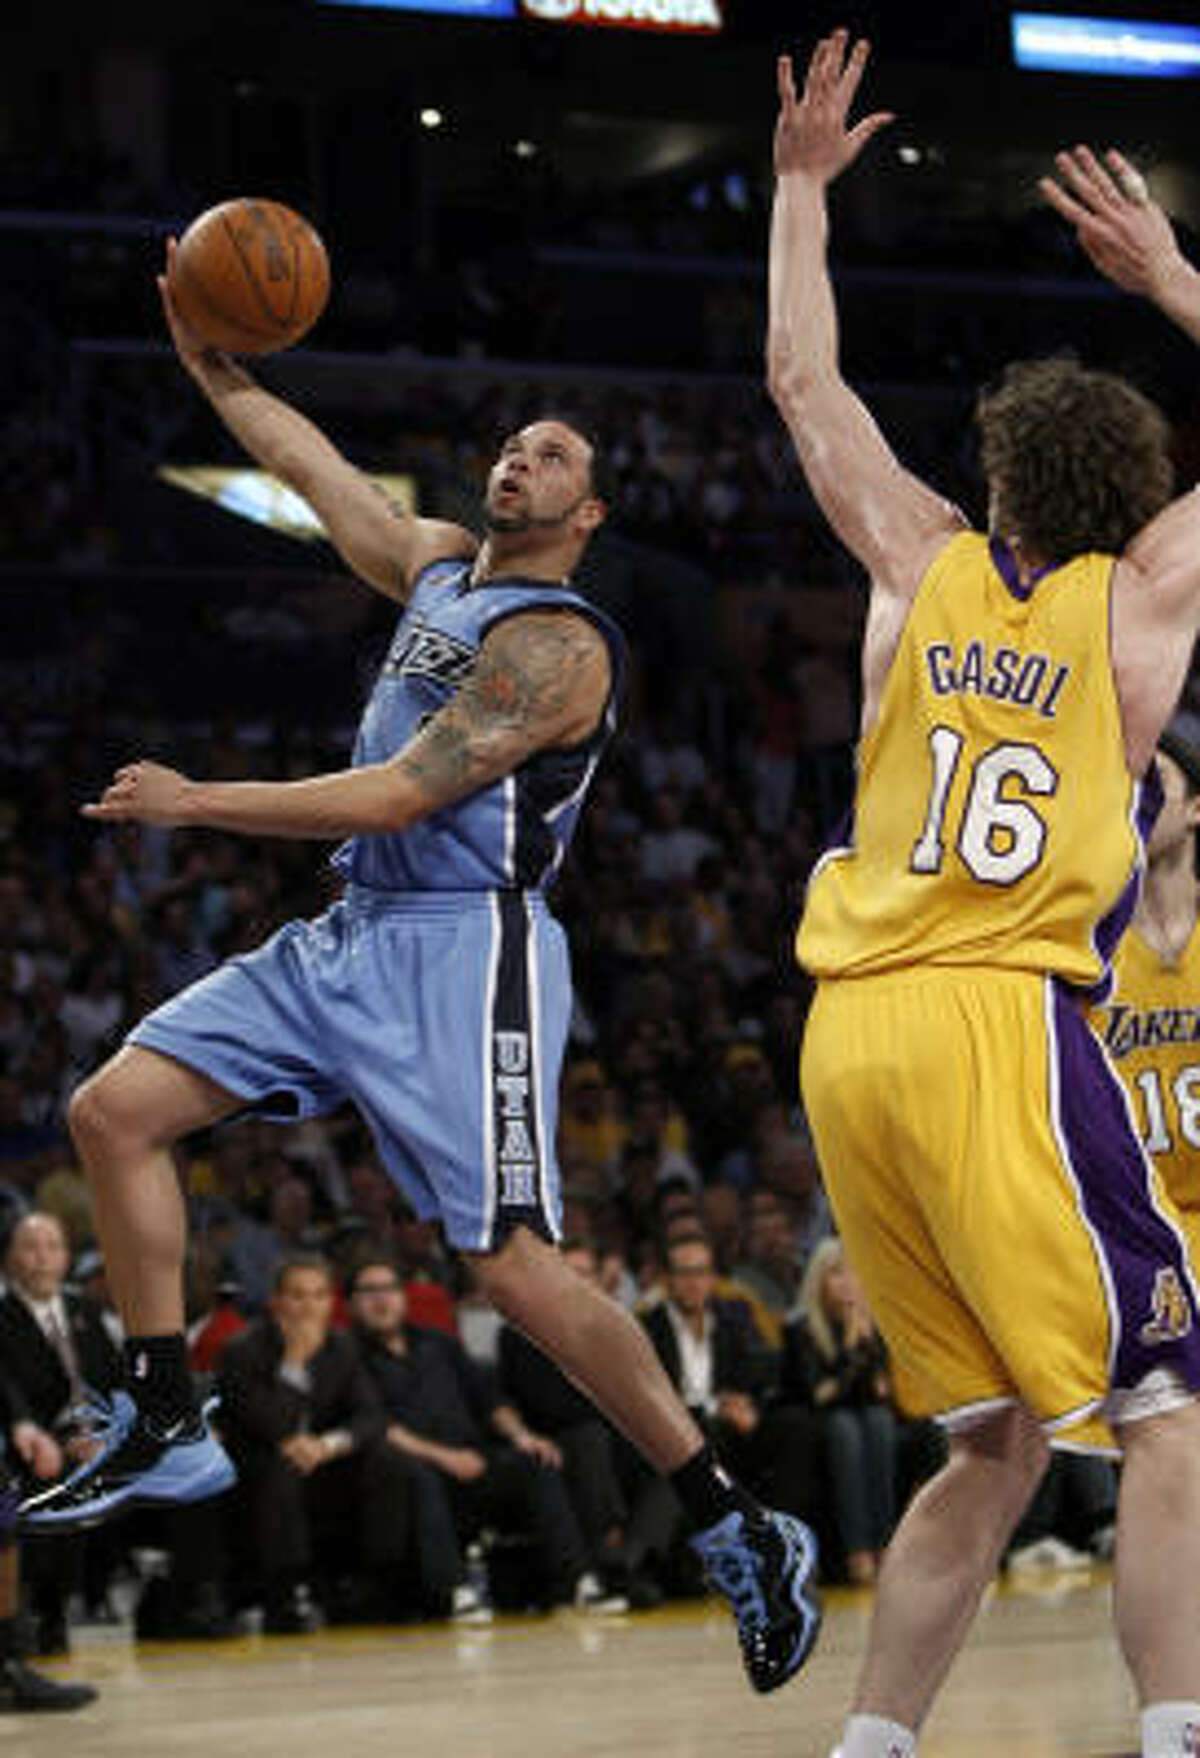 Utah's Deron Williams, left, takes a shot over Los Angeles' Pau Gasol during the first half.